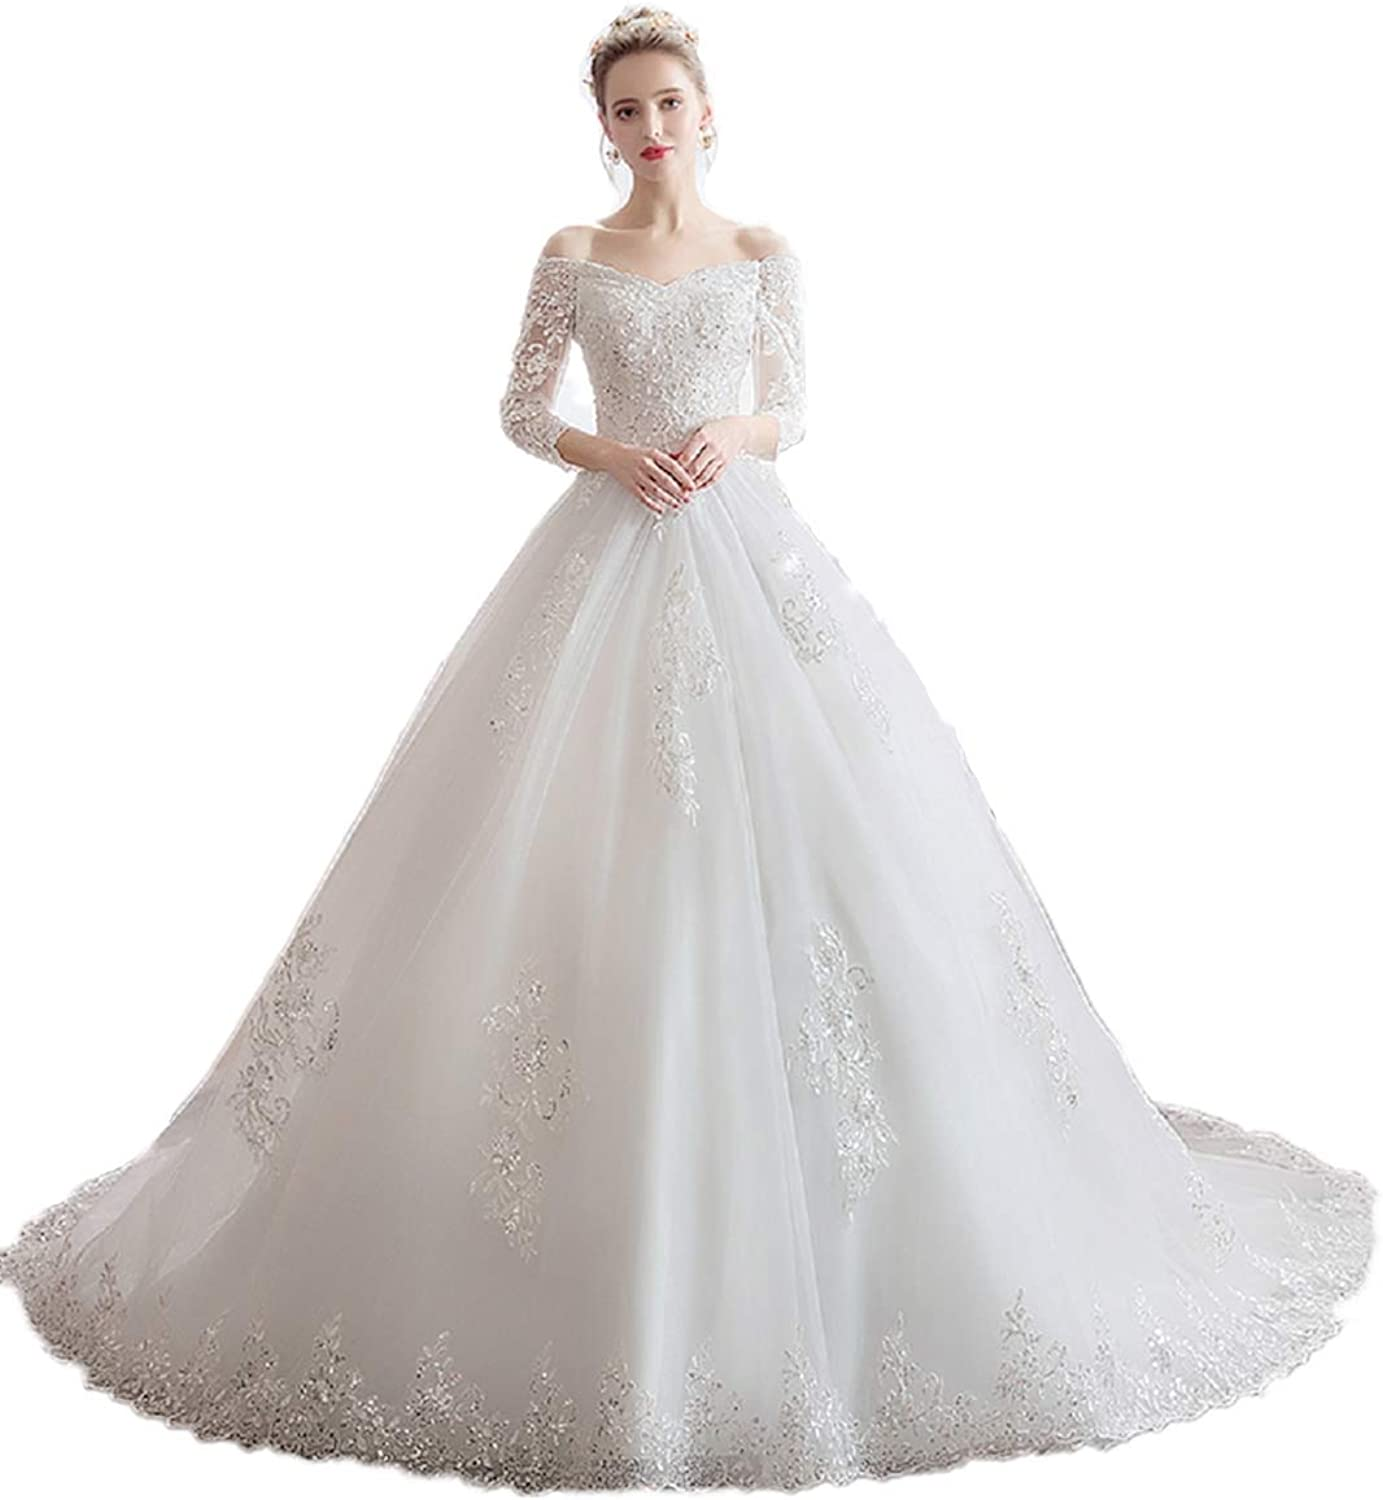 LYQPD damen es Lace Bridal Wedding Dresses Princess Tube Top Weiß Tail Long Sleeve Wedding Dress Luxurious and Elegant Temperament Wedding Dress